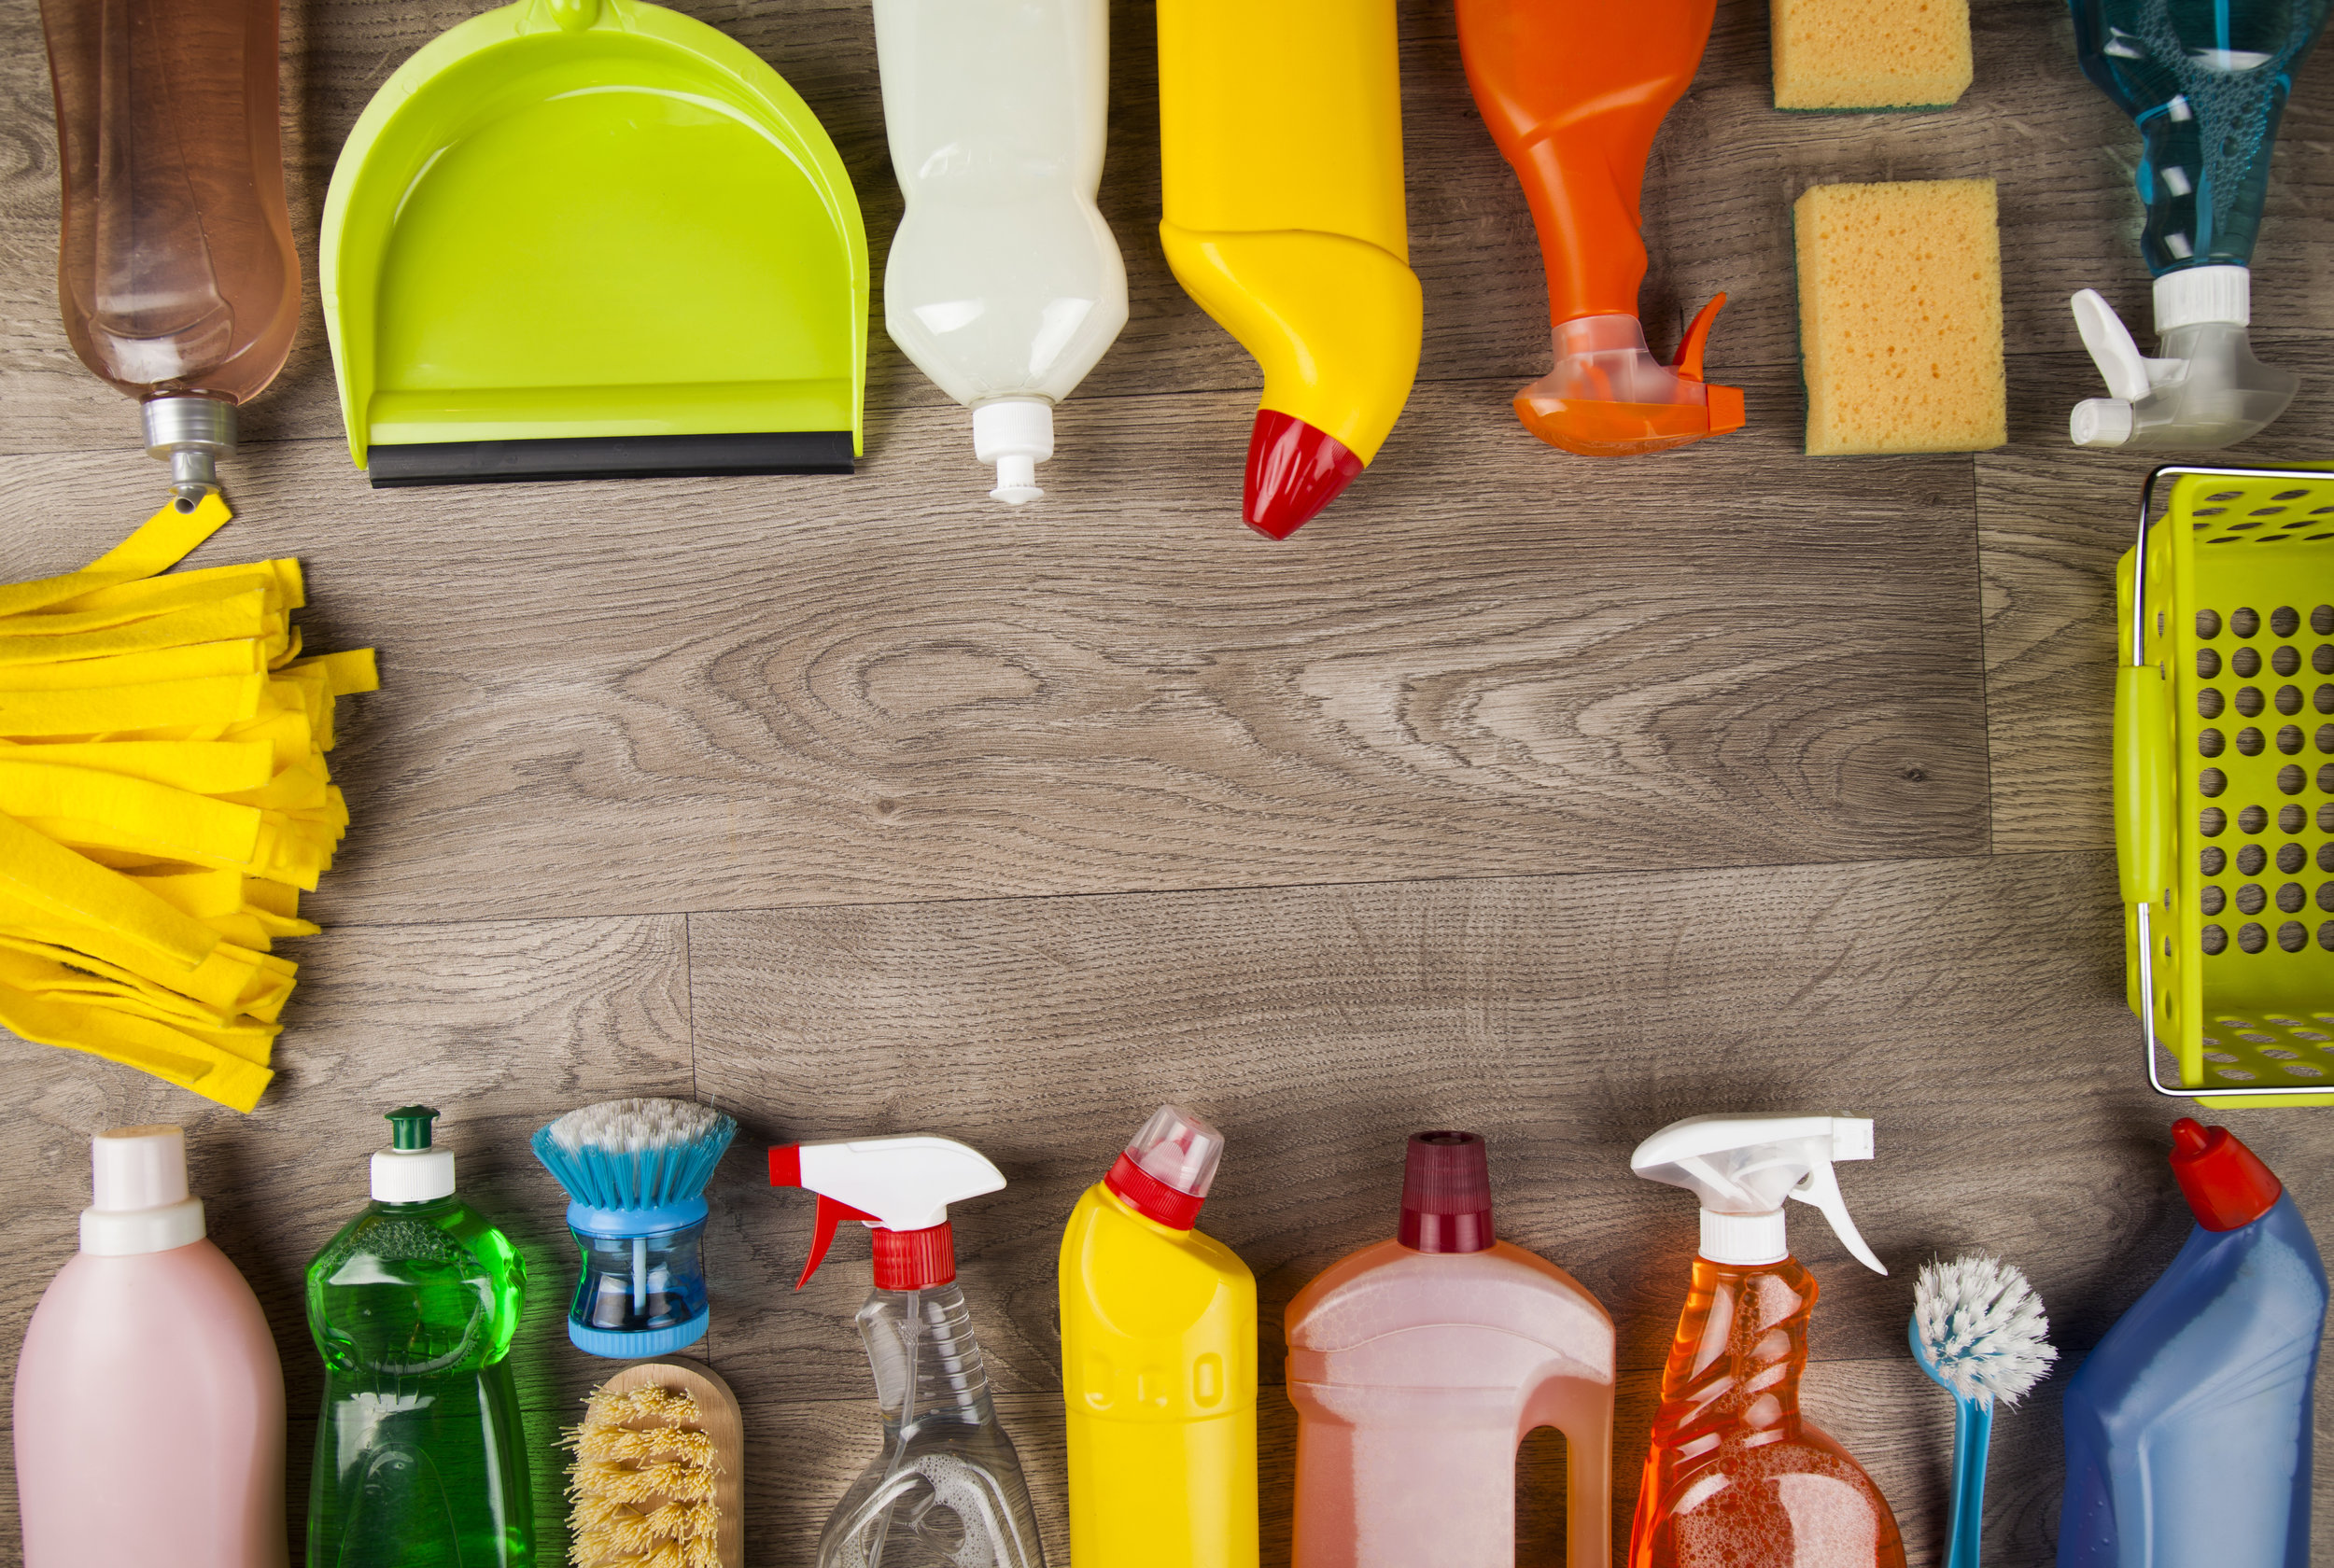 A consumer packaged brand in the household and cleaning space. -